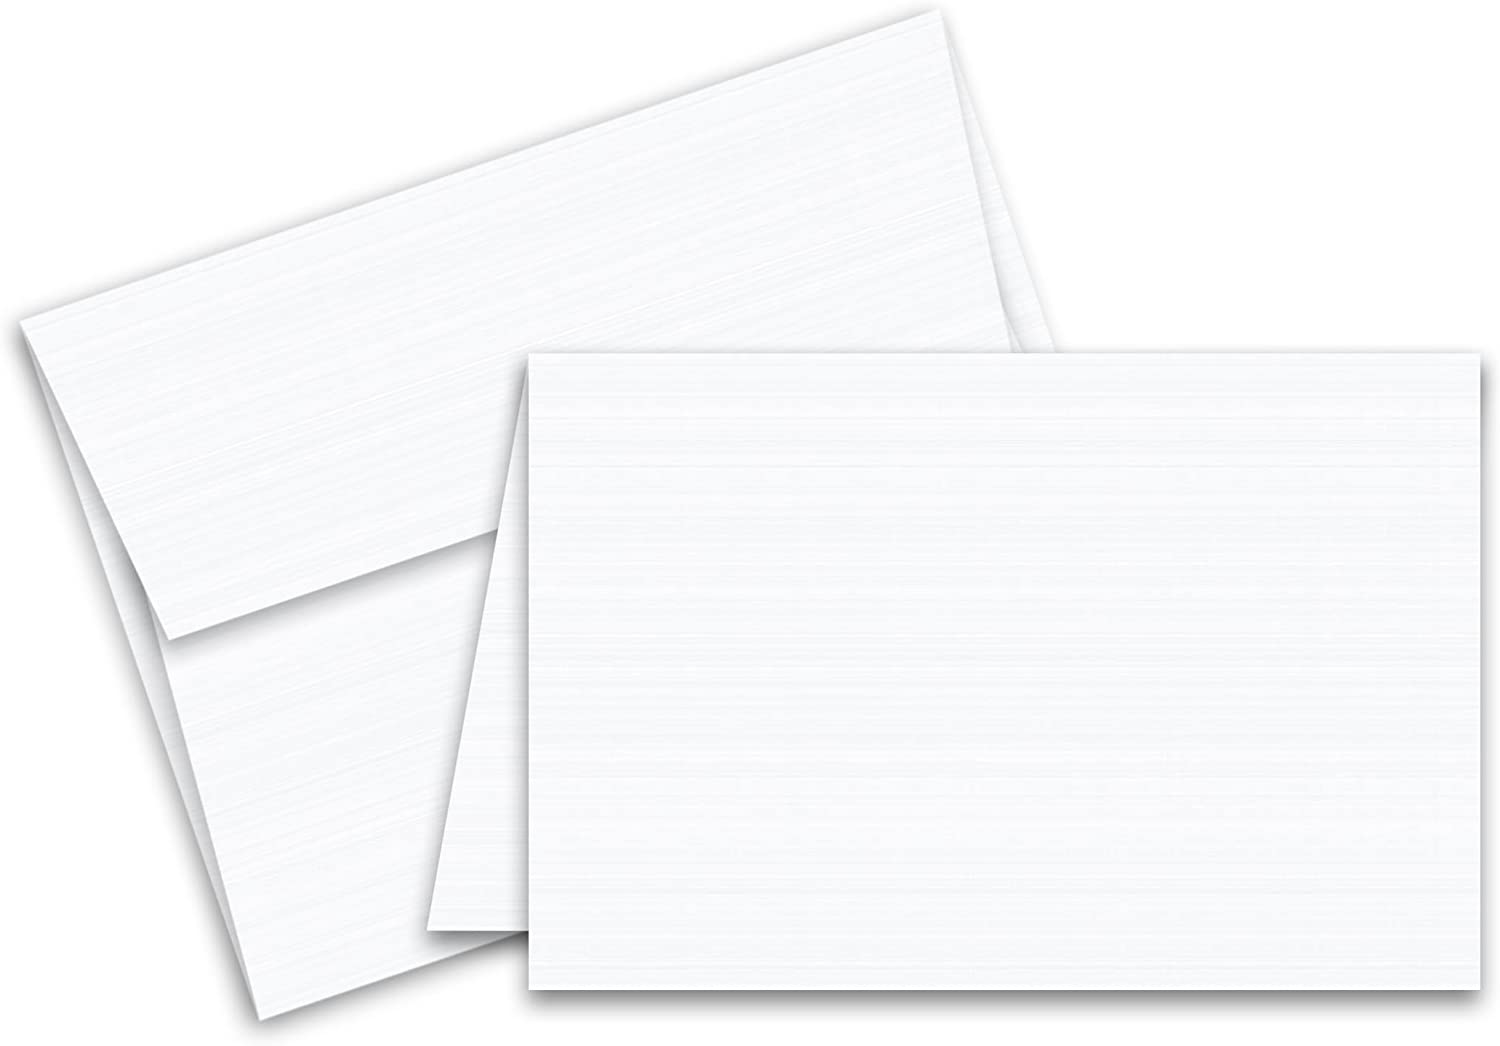 Item 154C 4x6 inch Lined Note Cards Printable DIY INSTANT DOWNLOAD 2 Designs Black /& White